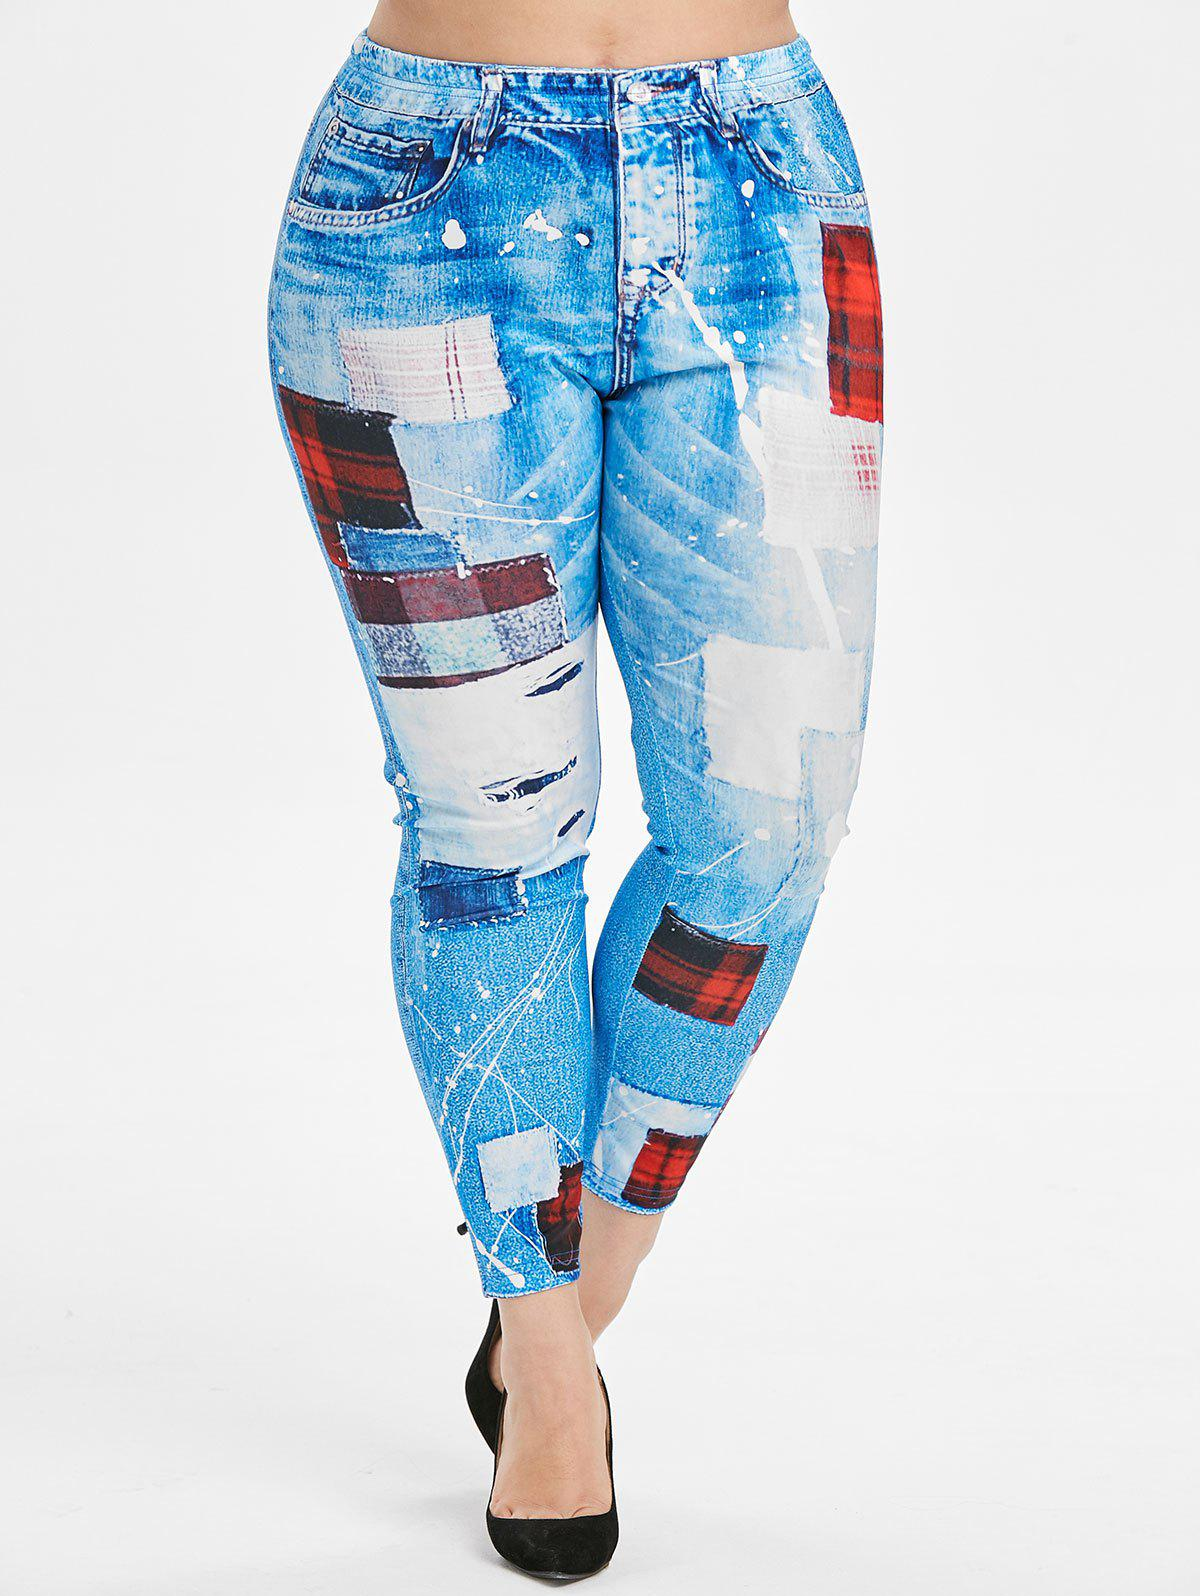 3D Plaid Panel High Waisted Pull On Plus Size Jeggings - DENIM BLUE 5X